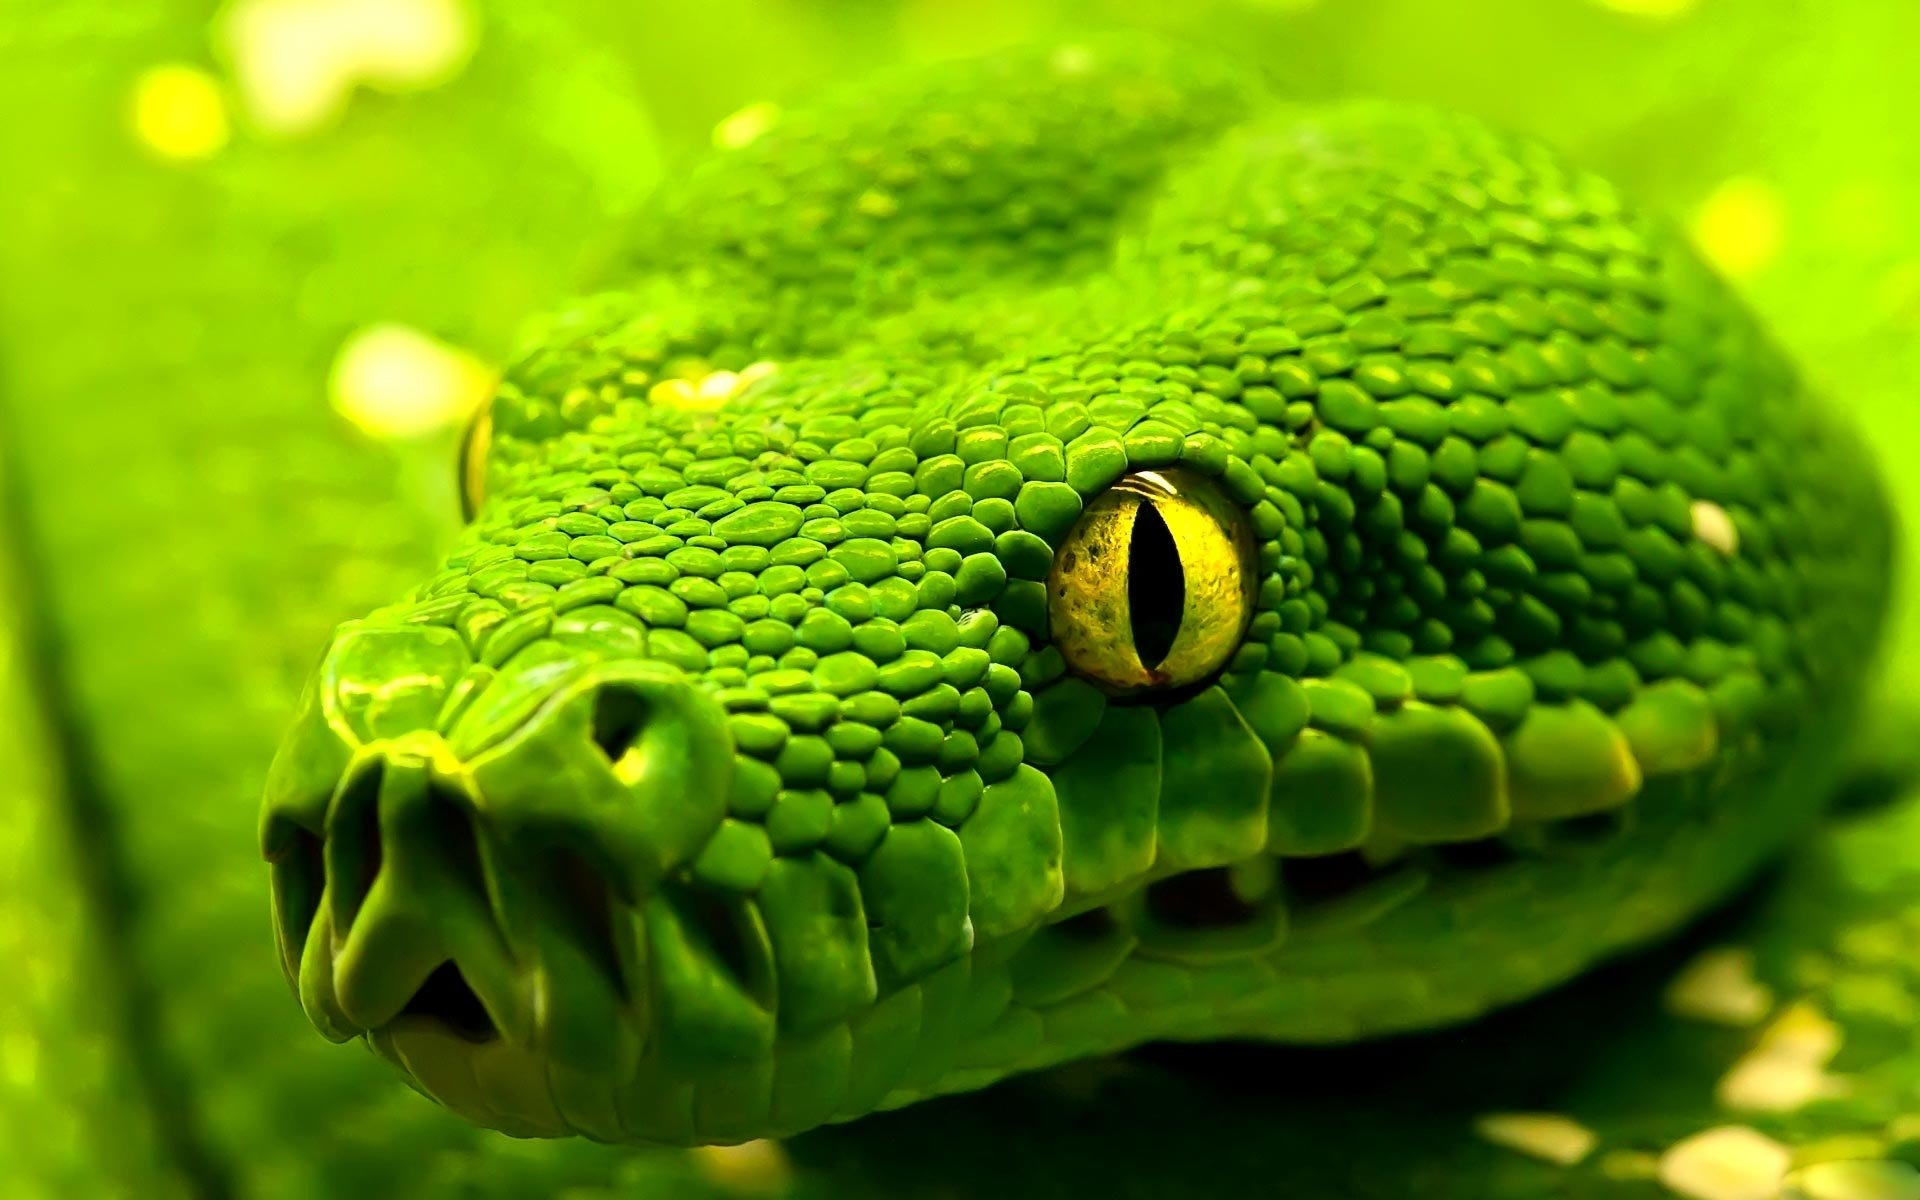 306 snake hd wallpapers | background images - wallpaper abyss